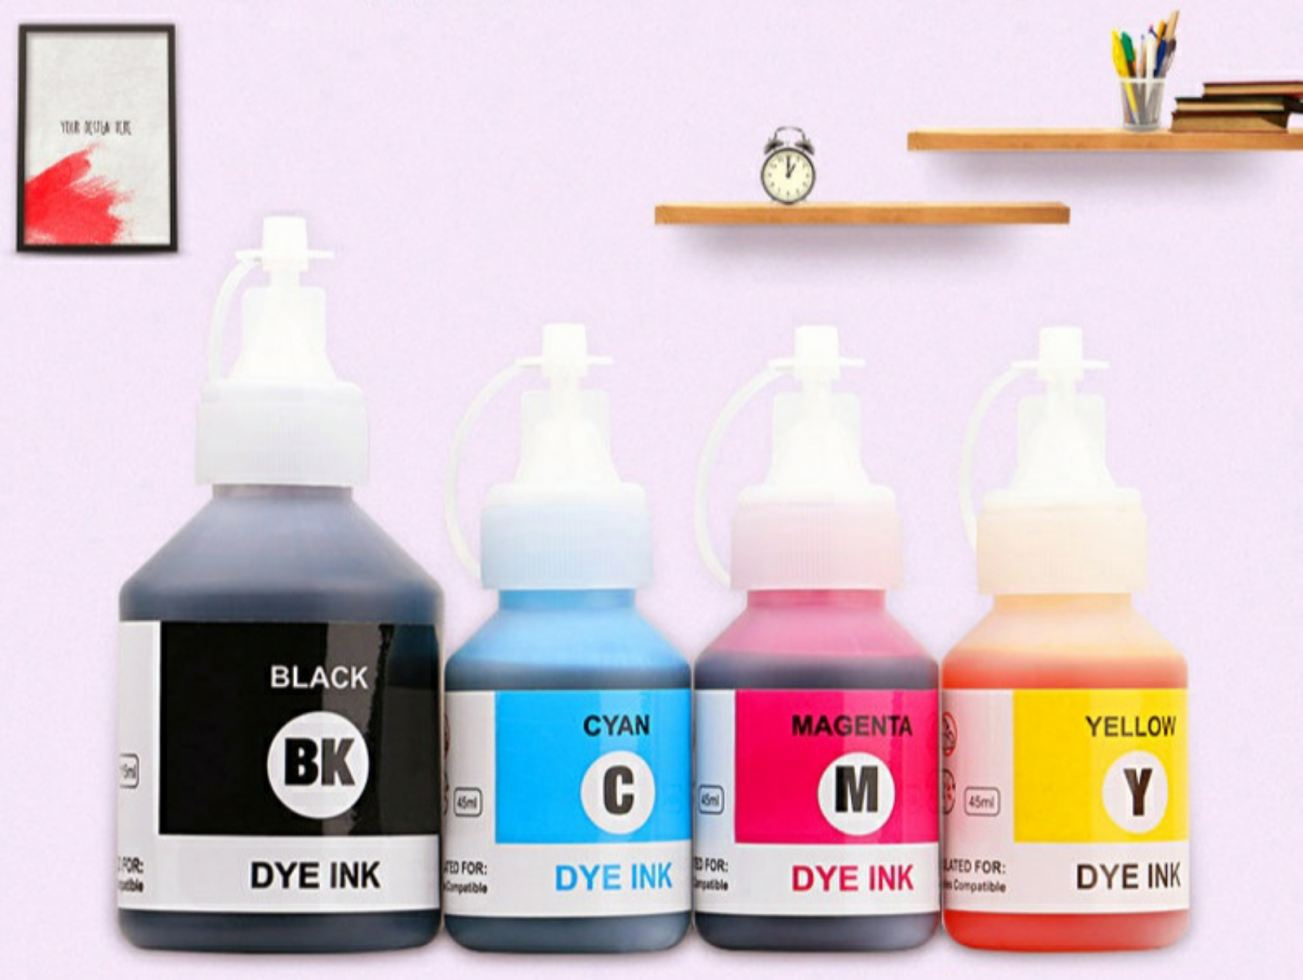 PREMIUM Dye Ink Fit for BROTHER Printer